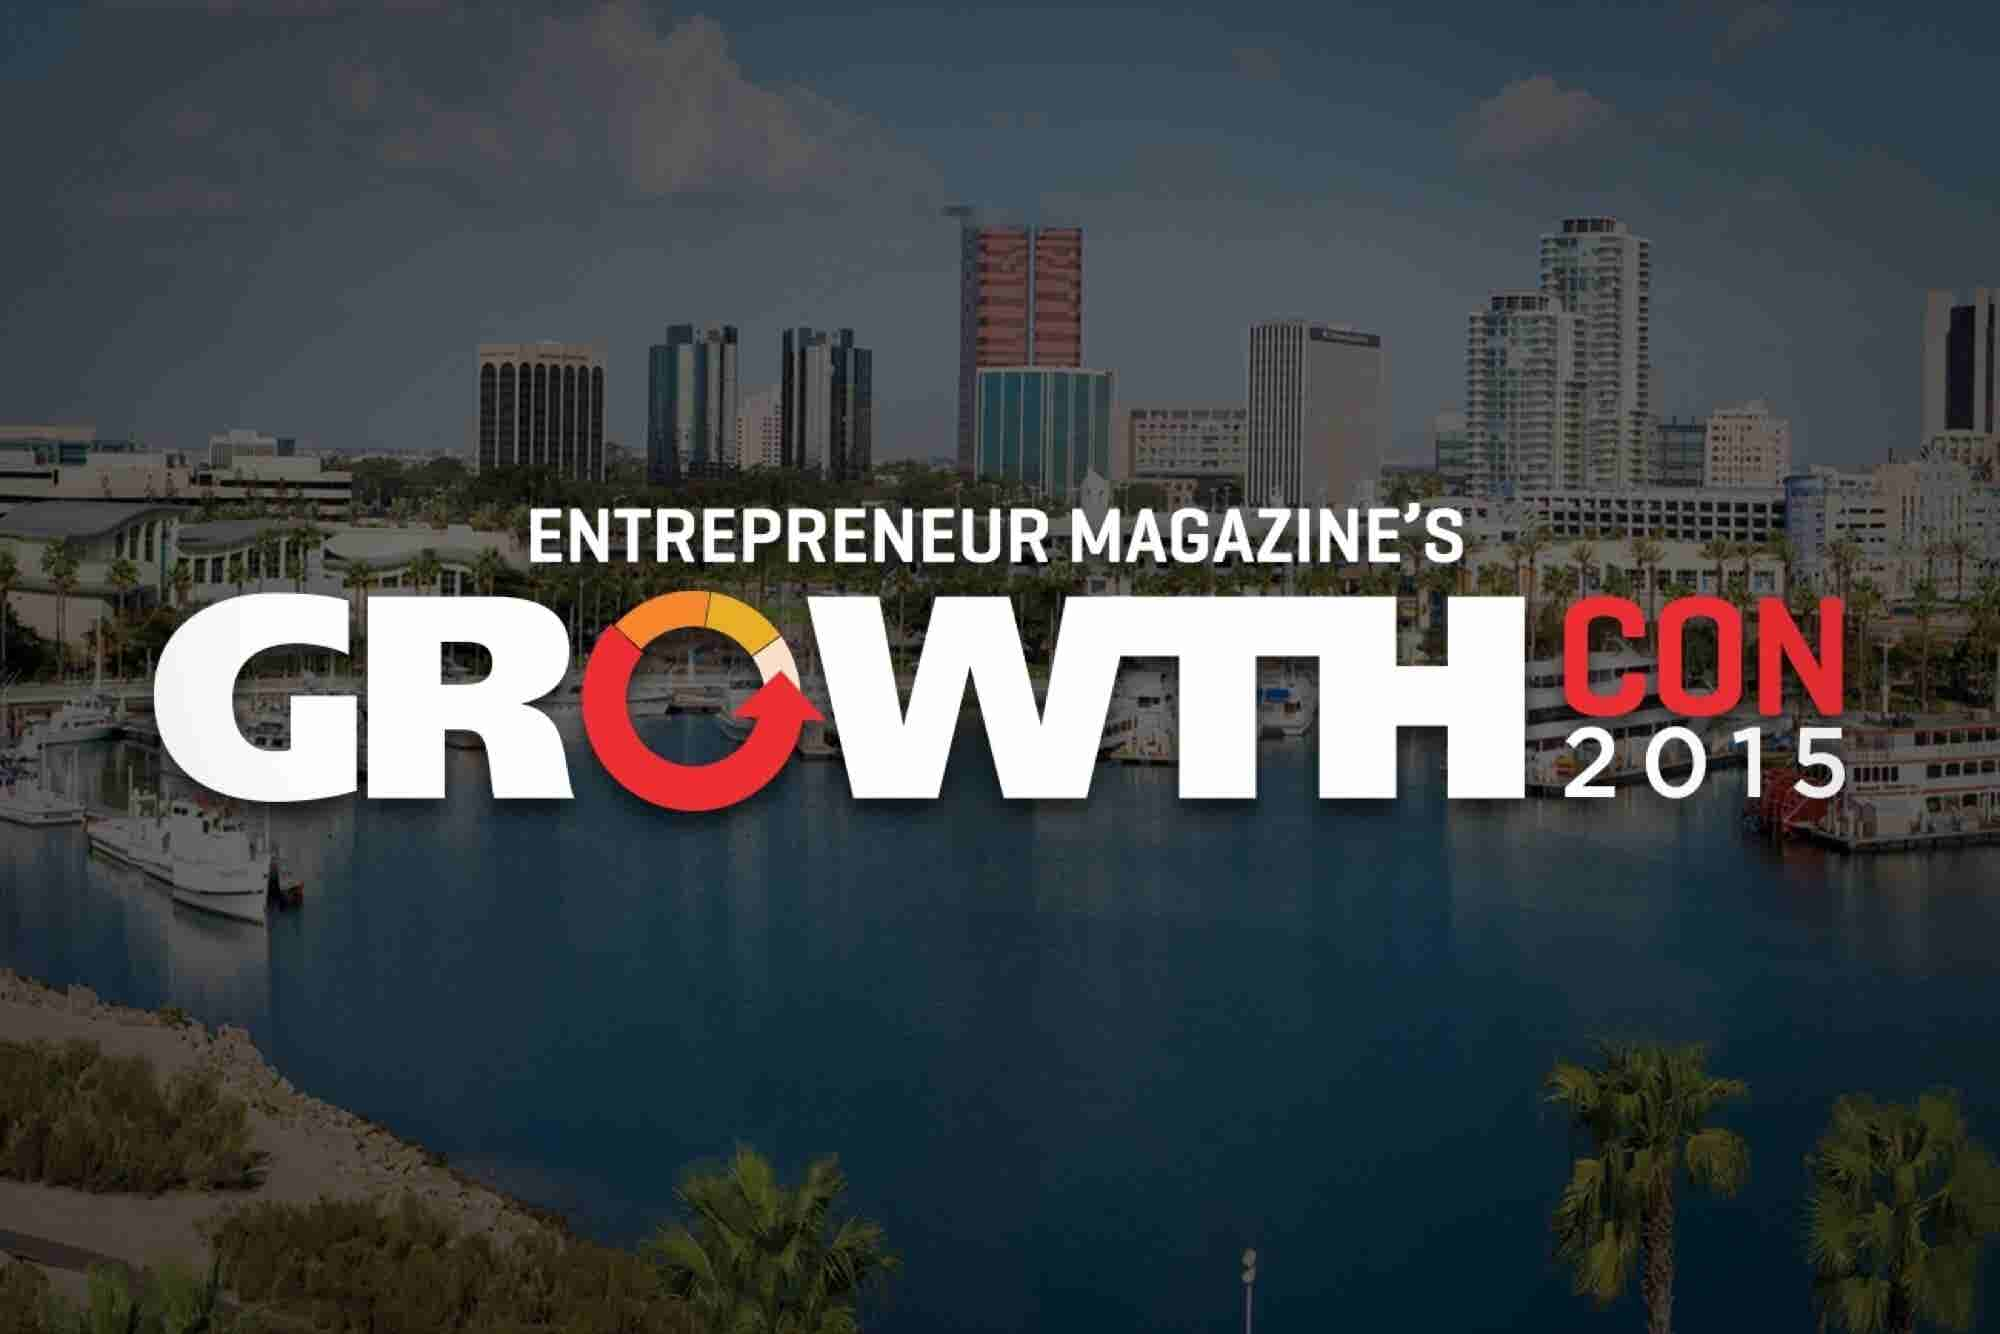 Join Us at GrowthCon 2015 for a Day of Inspiration and Insight